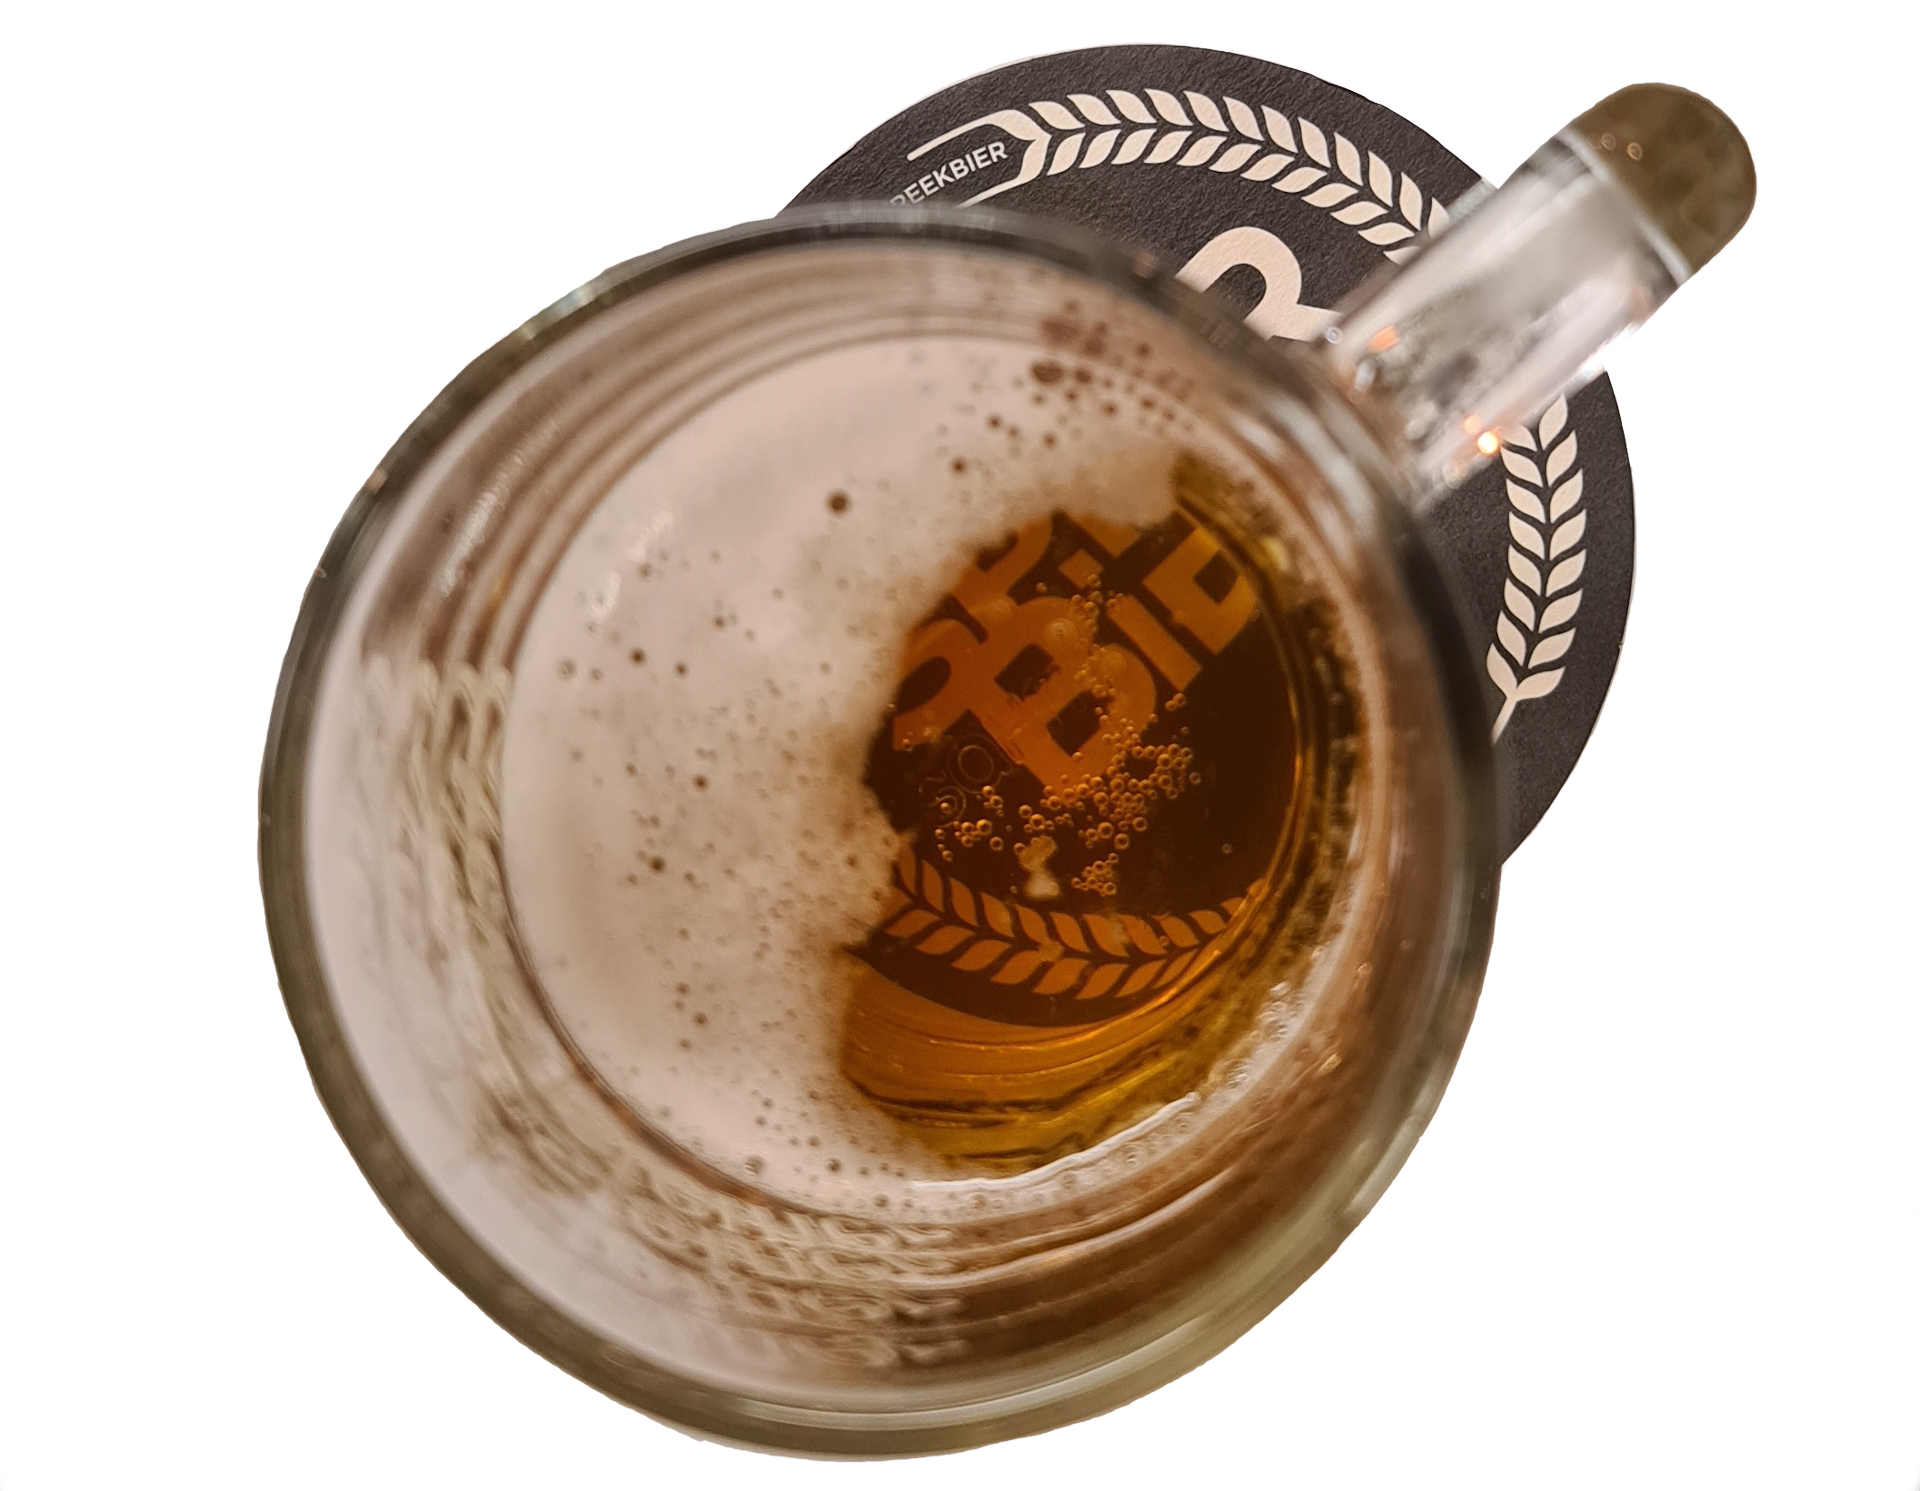 https://www.spierbier.com/wp-content/uploads/2020/03/glas-en-vilt-transparent-finished.png